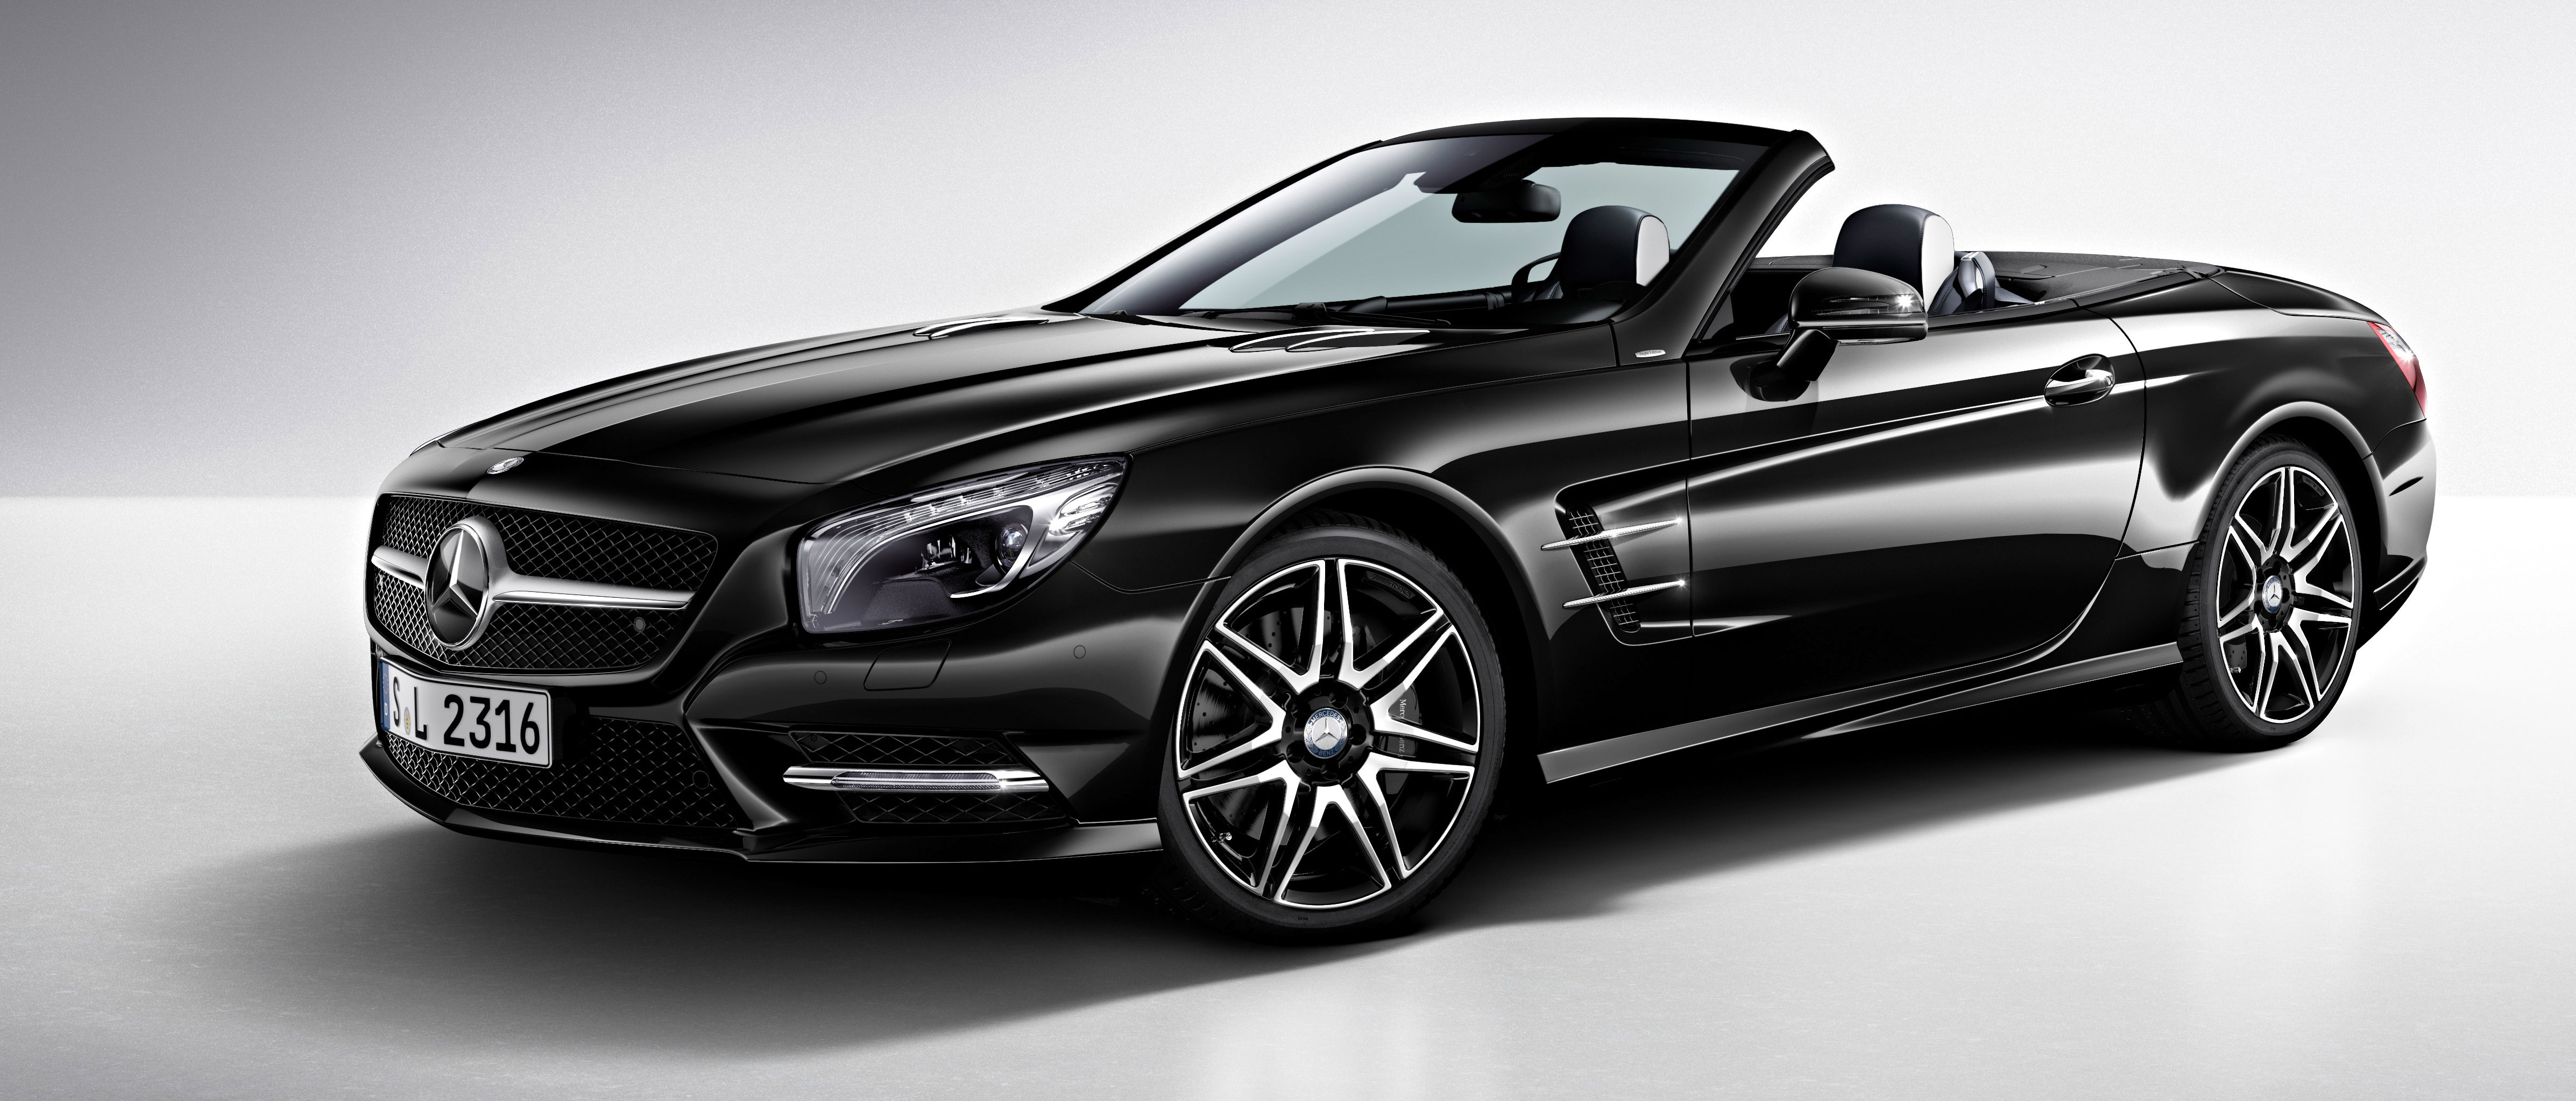 mercedes benz sl 400 replaces sl 350 with turbo v6. Black Bedroom Furniture Sets. Home Design Ideas